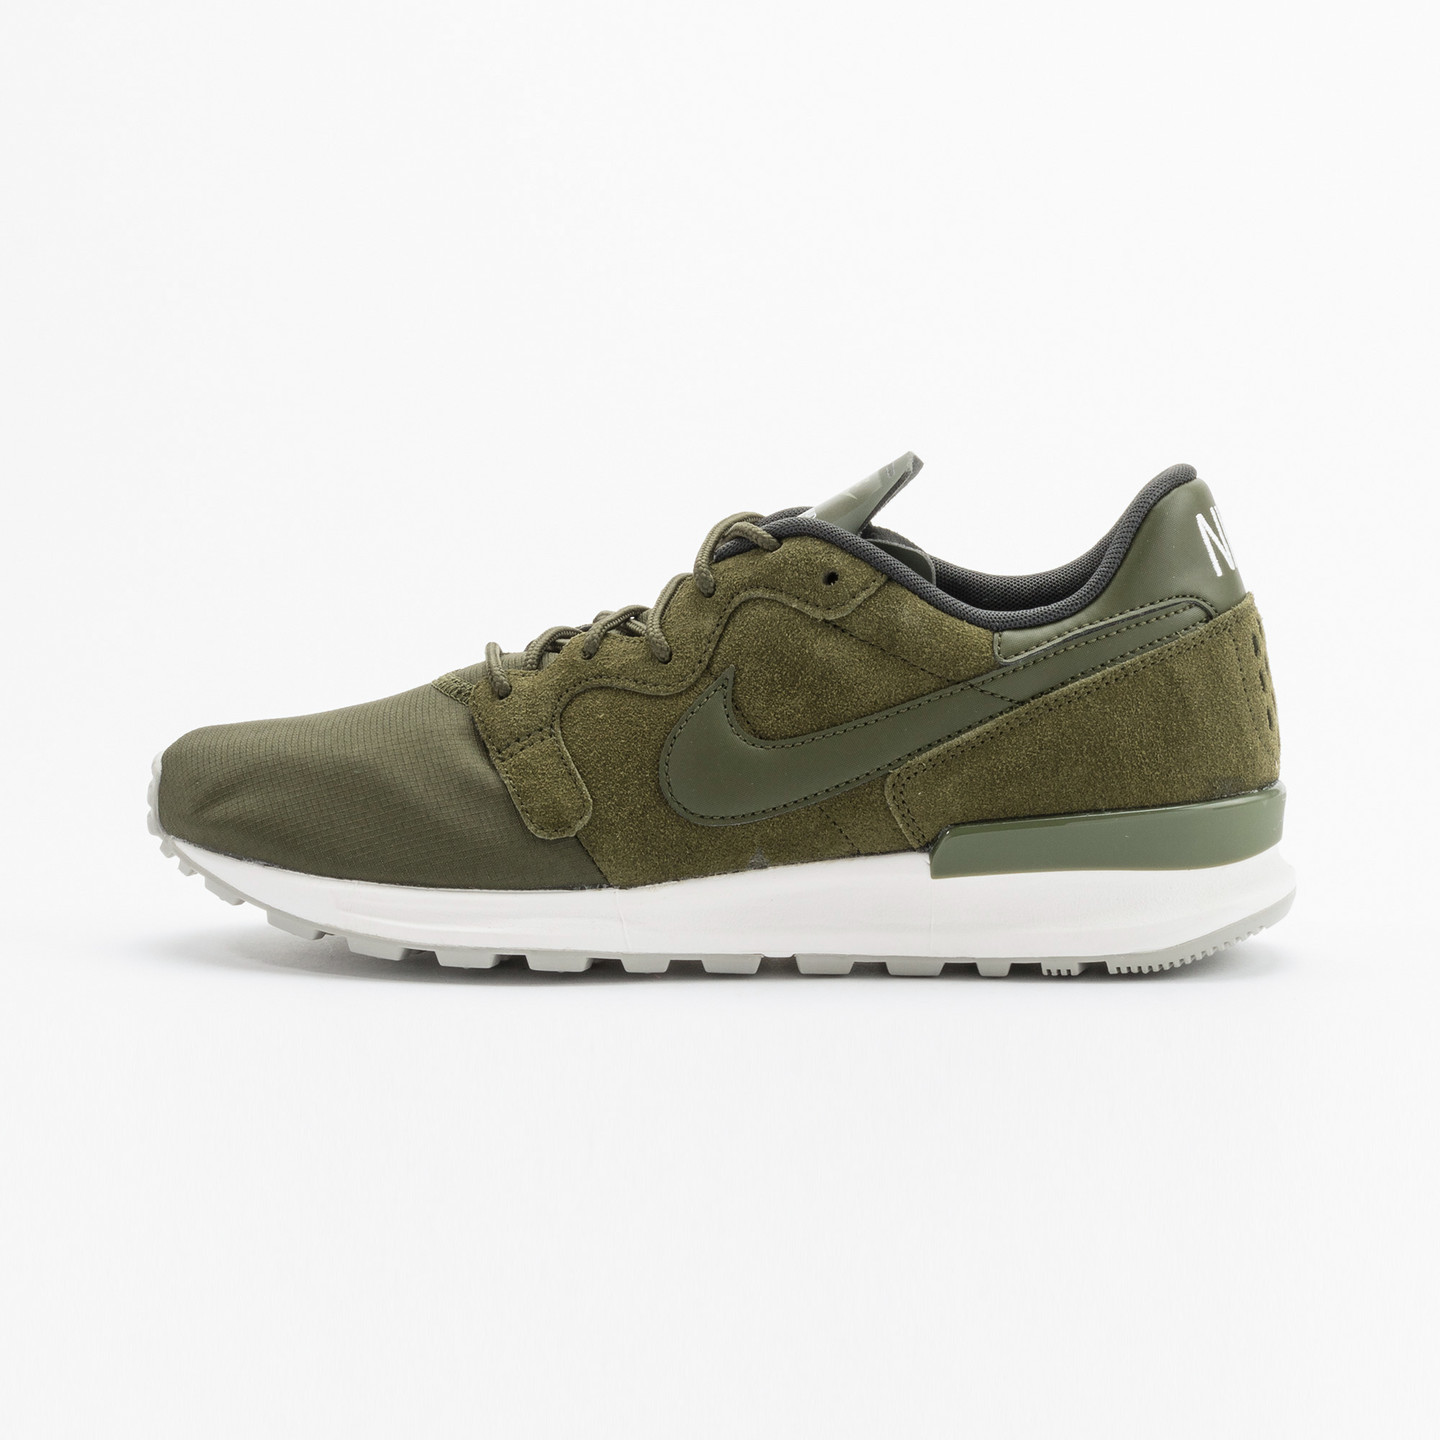 Nike Air Berwuda Premium Legion Green / Sequoia / Sail 844978-300